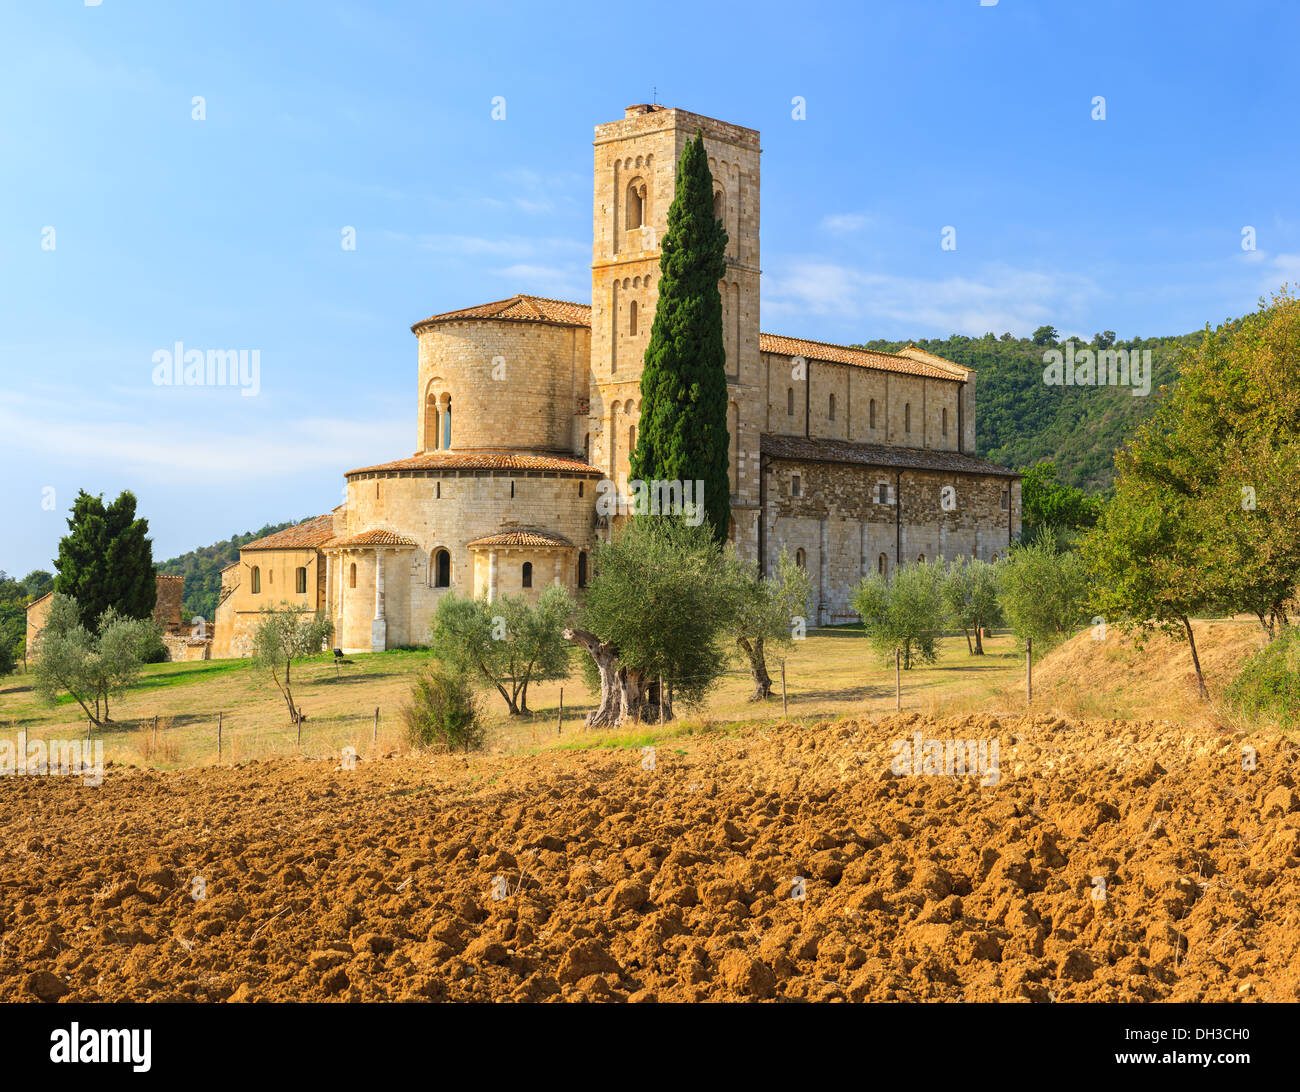 The Abbey of Sant'Antimo is a former Benedictine monastery in the comune of Montalcino, Tuscany, central Italy - Stock Image